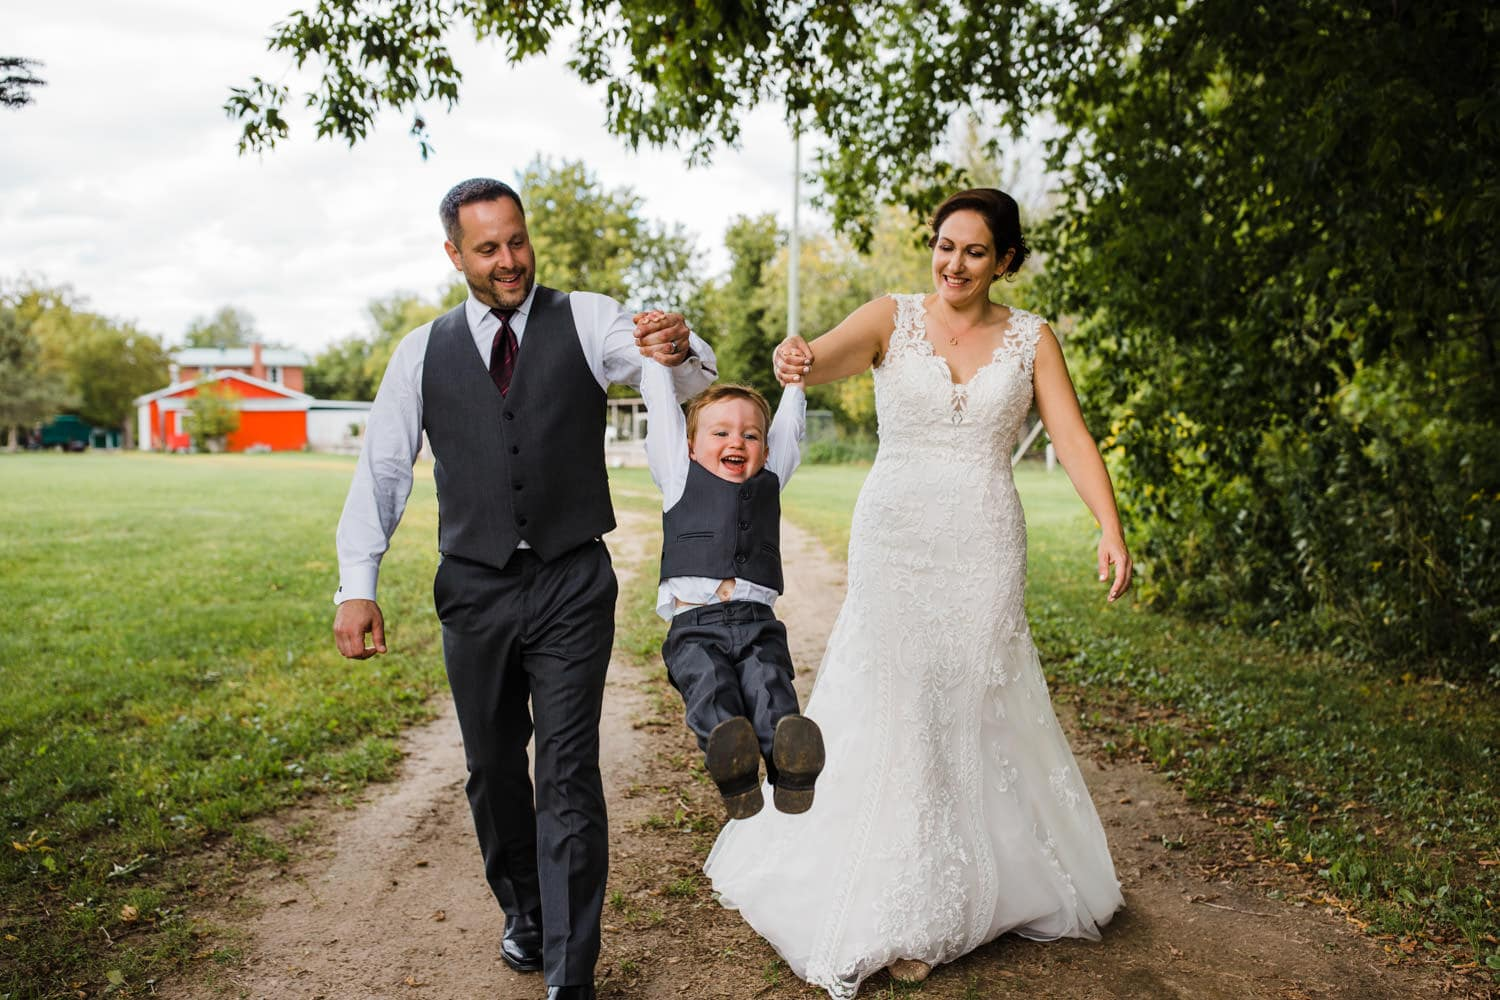 bride and groom swing their young son - station 4 saisons wedding